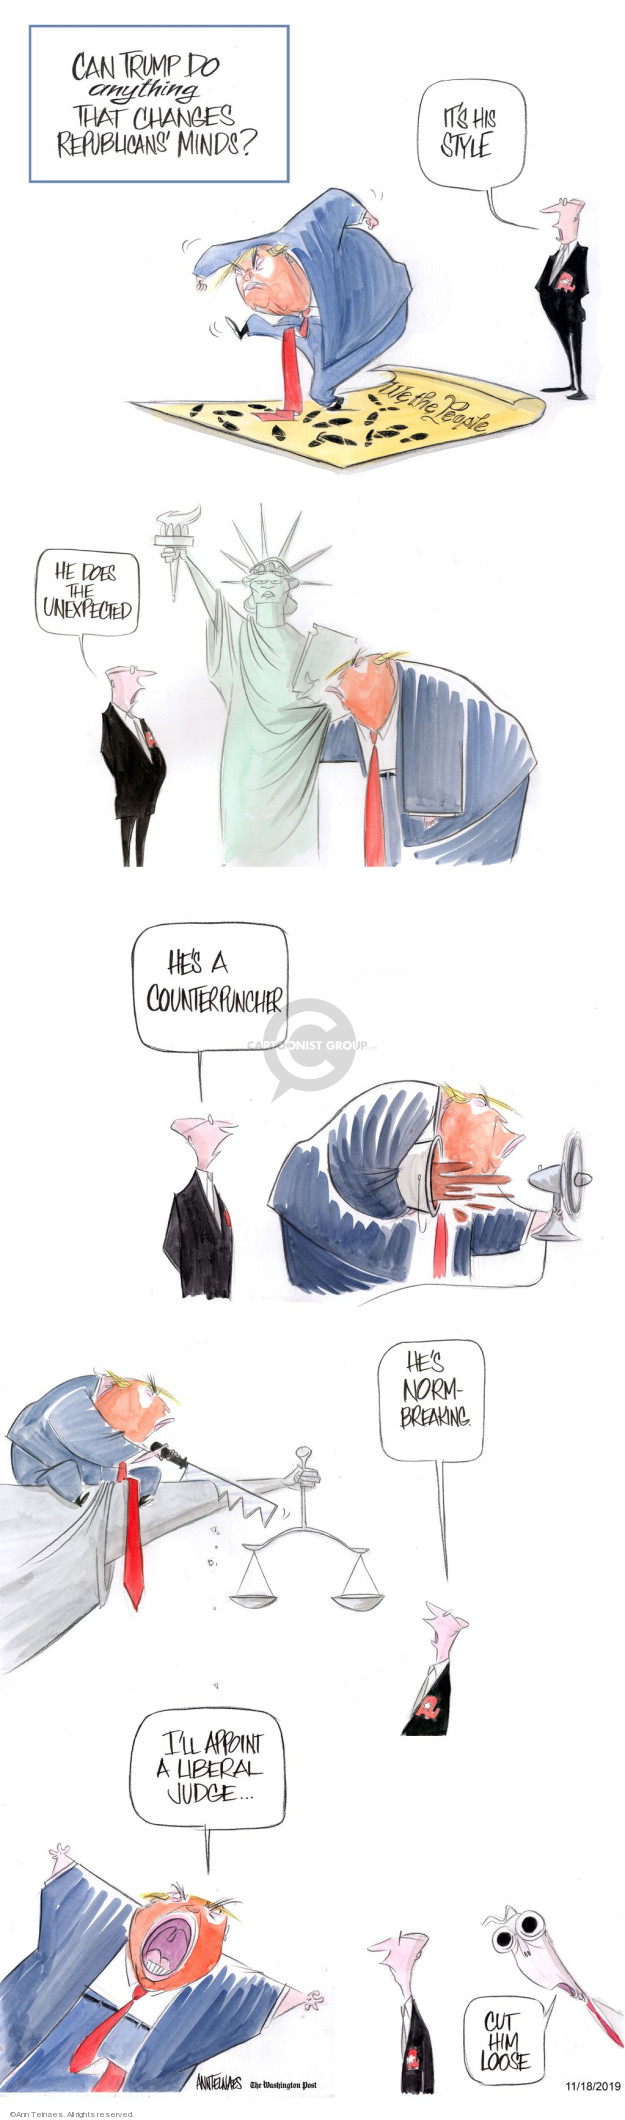 Ann Telnaes  Ann Telnaes' Editorial Cartoons 2019-11-18 lady